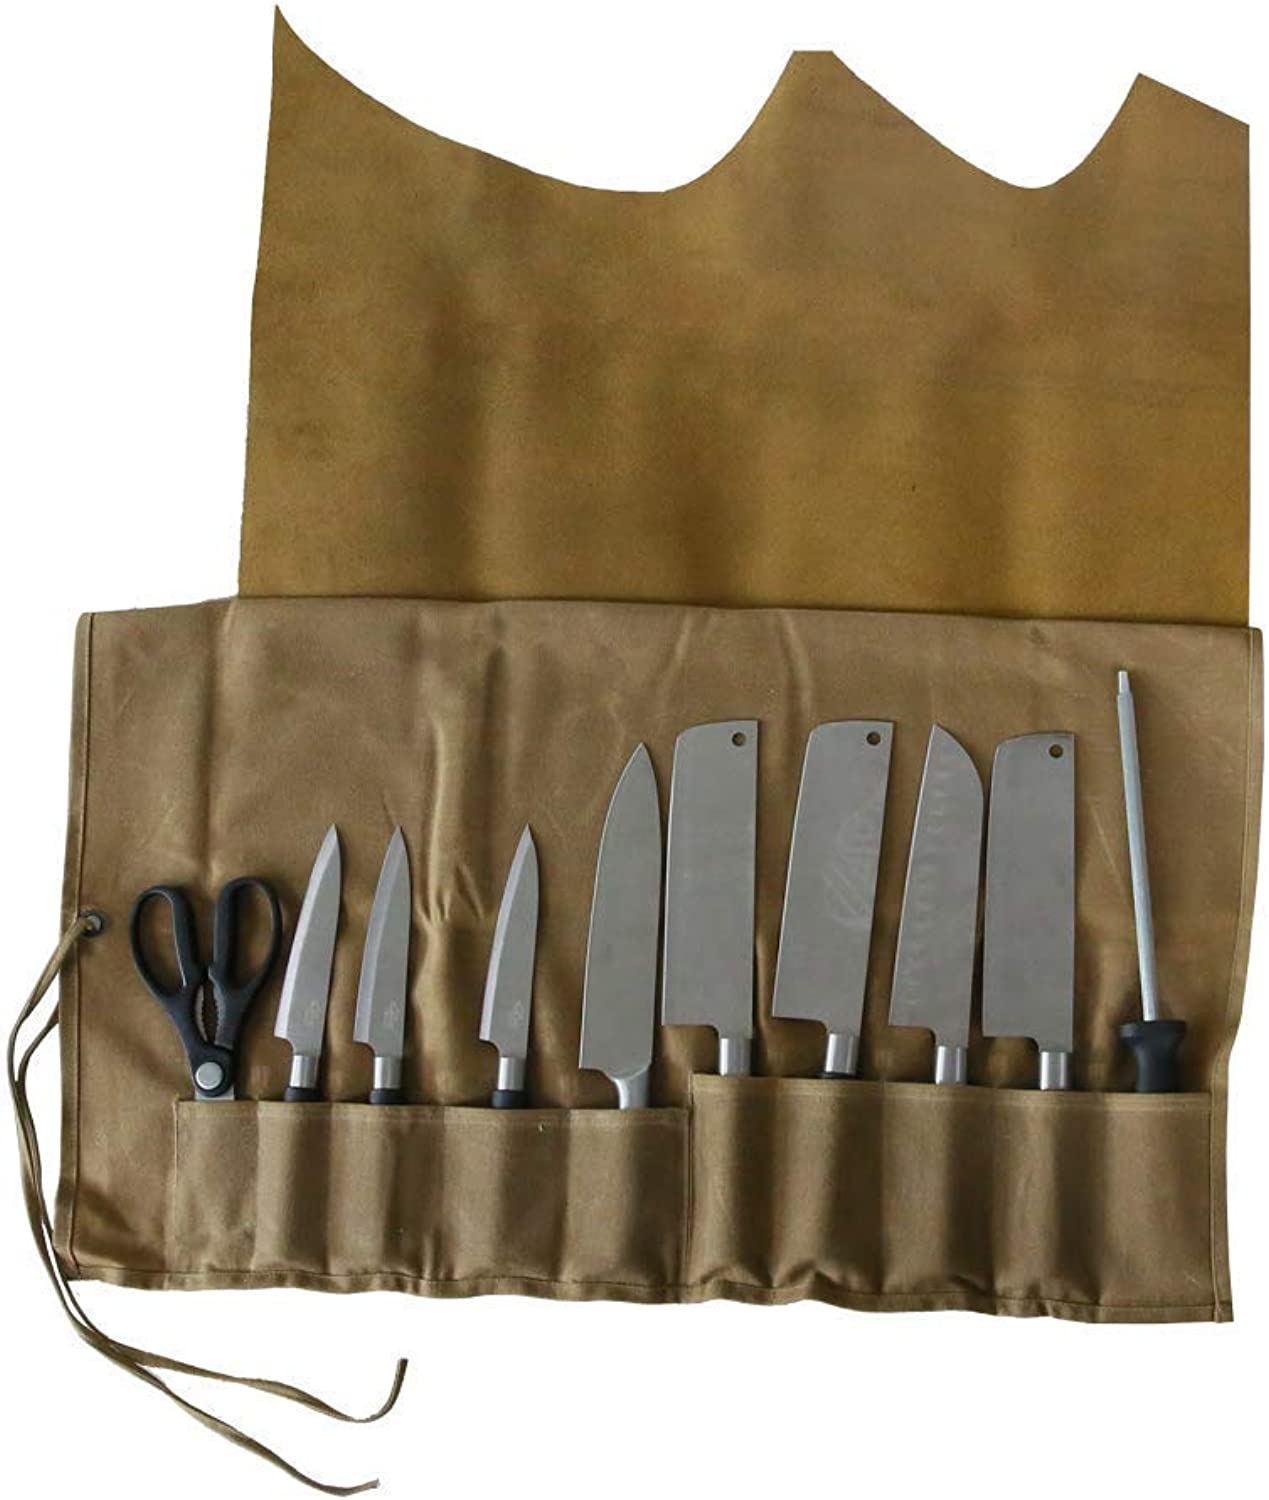 QEES Genuine Leather Knife Roll Knife Bag Utensil Holder, 10 Pockets Handmade Waxed Canvas All Purpose Chef's Tool Roll DD01